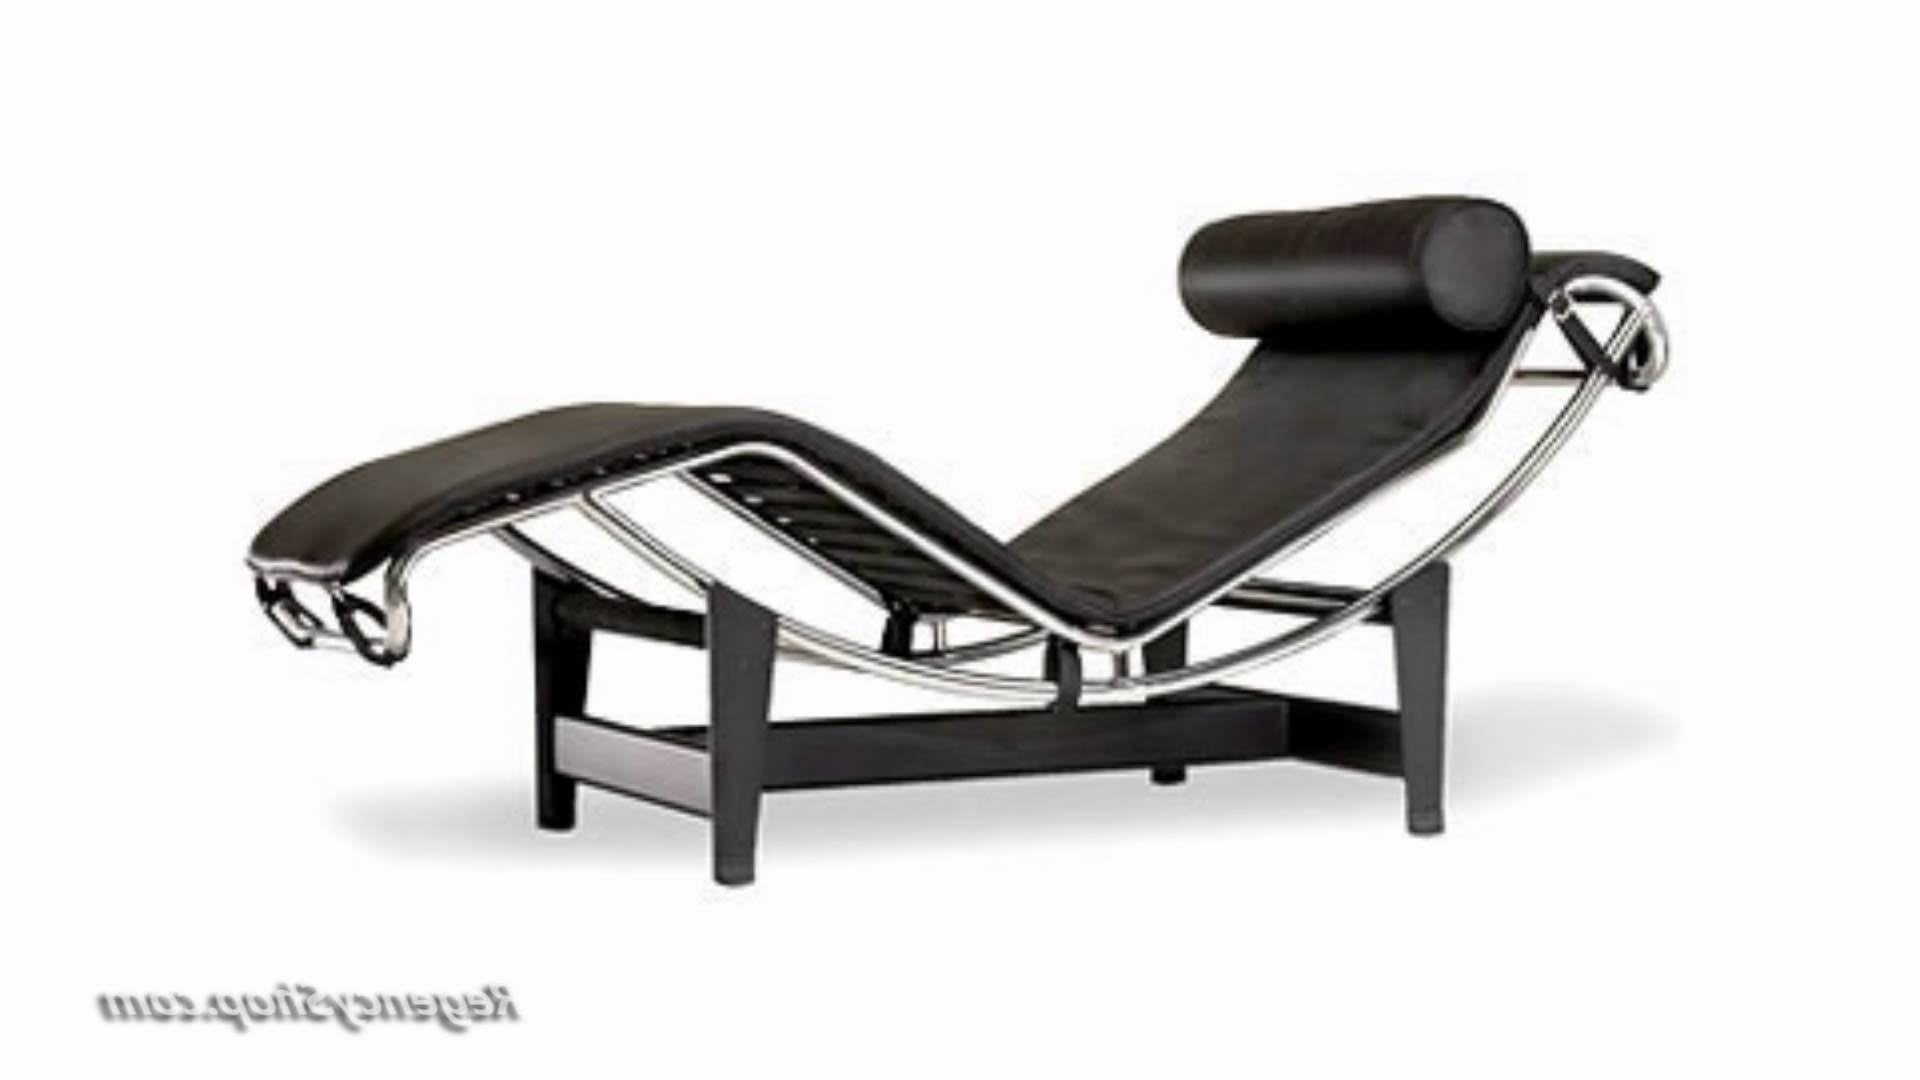 Lc4 Chaise Lounges Regarding Famous Le Corbusier Lc4 Chaise Lounge Chair – Regencyshop – Youtube (View 9 of 15)